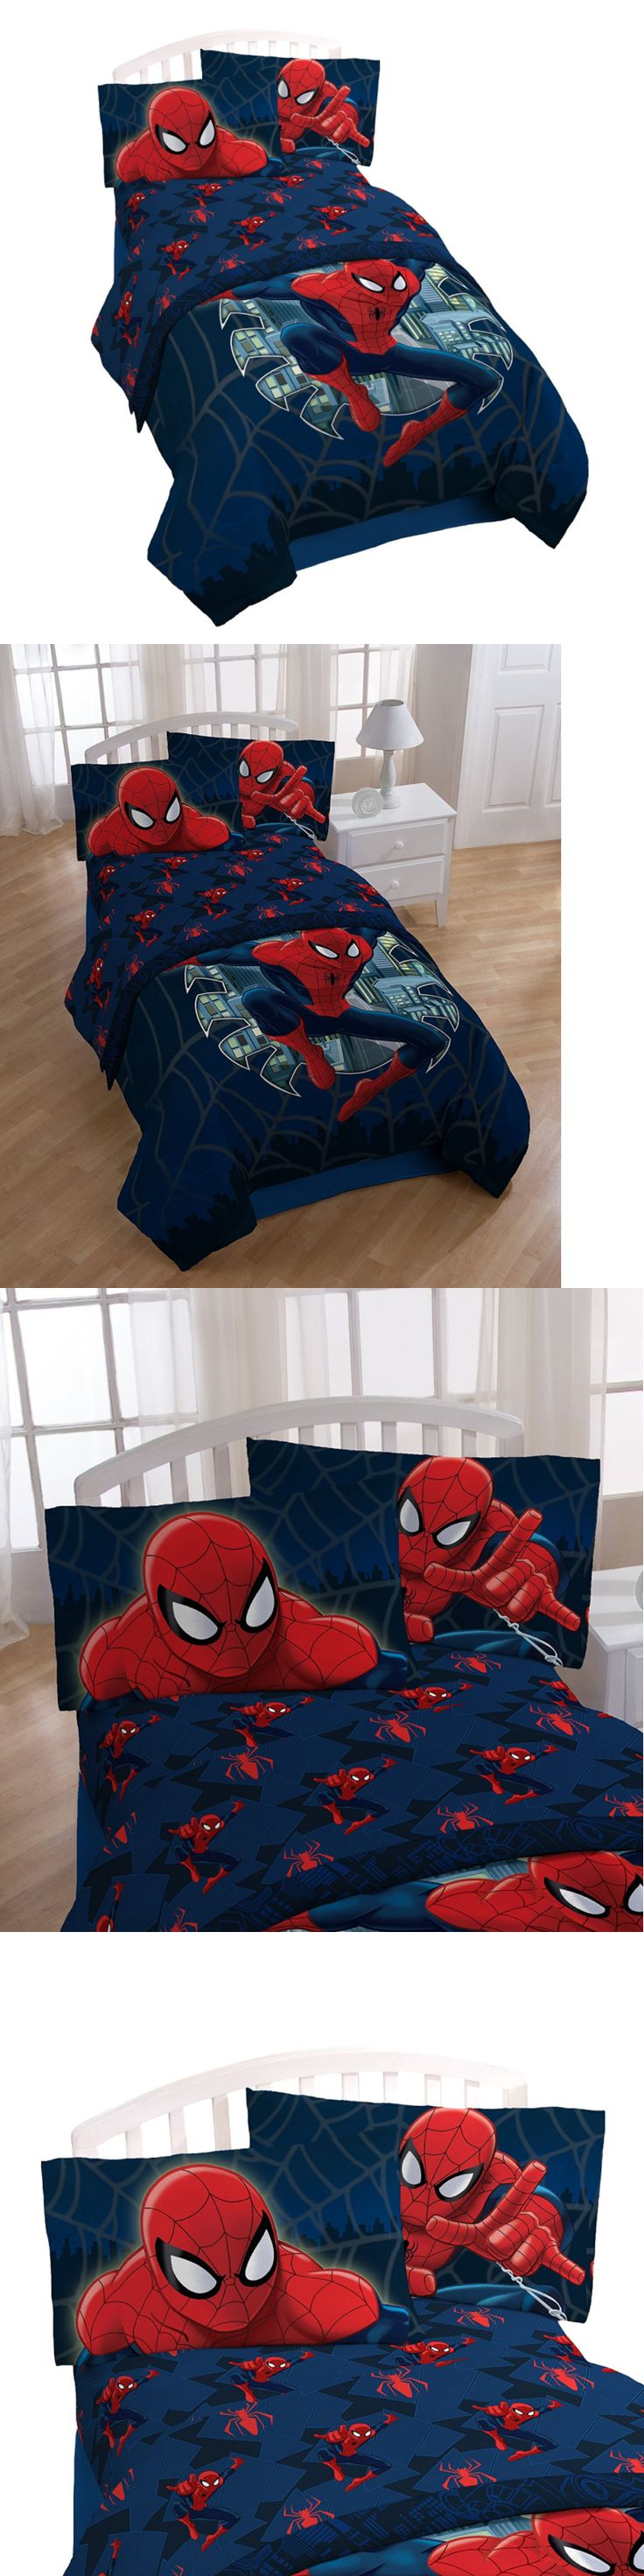 Sheets 79619: Marvel Spiderman Theme Boys Bedroom Pack, Bed Decoration Twin Sheet Set 3 Pc -> BUY IT NOW ONLY: $45.99 on eBay!